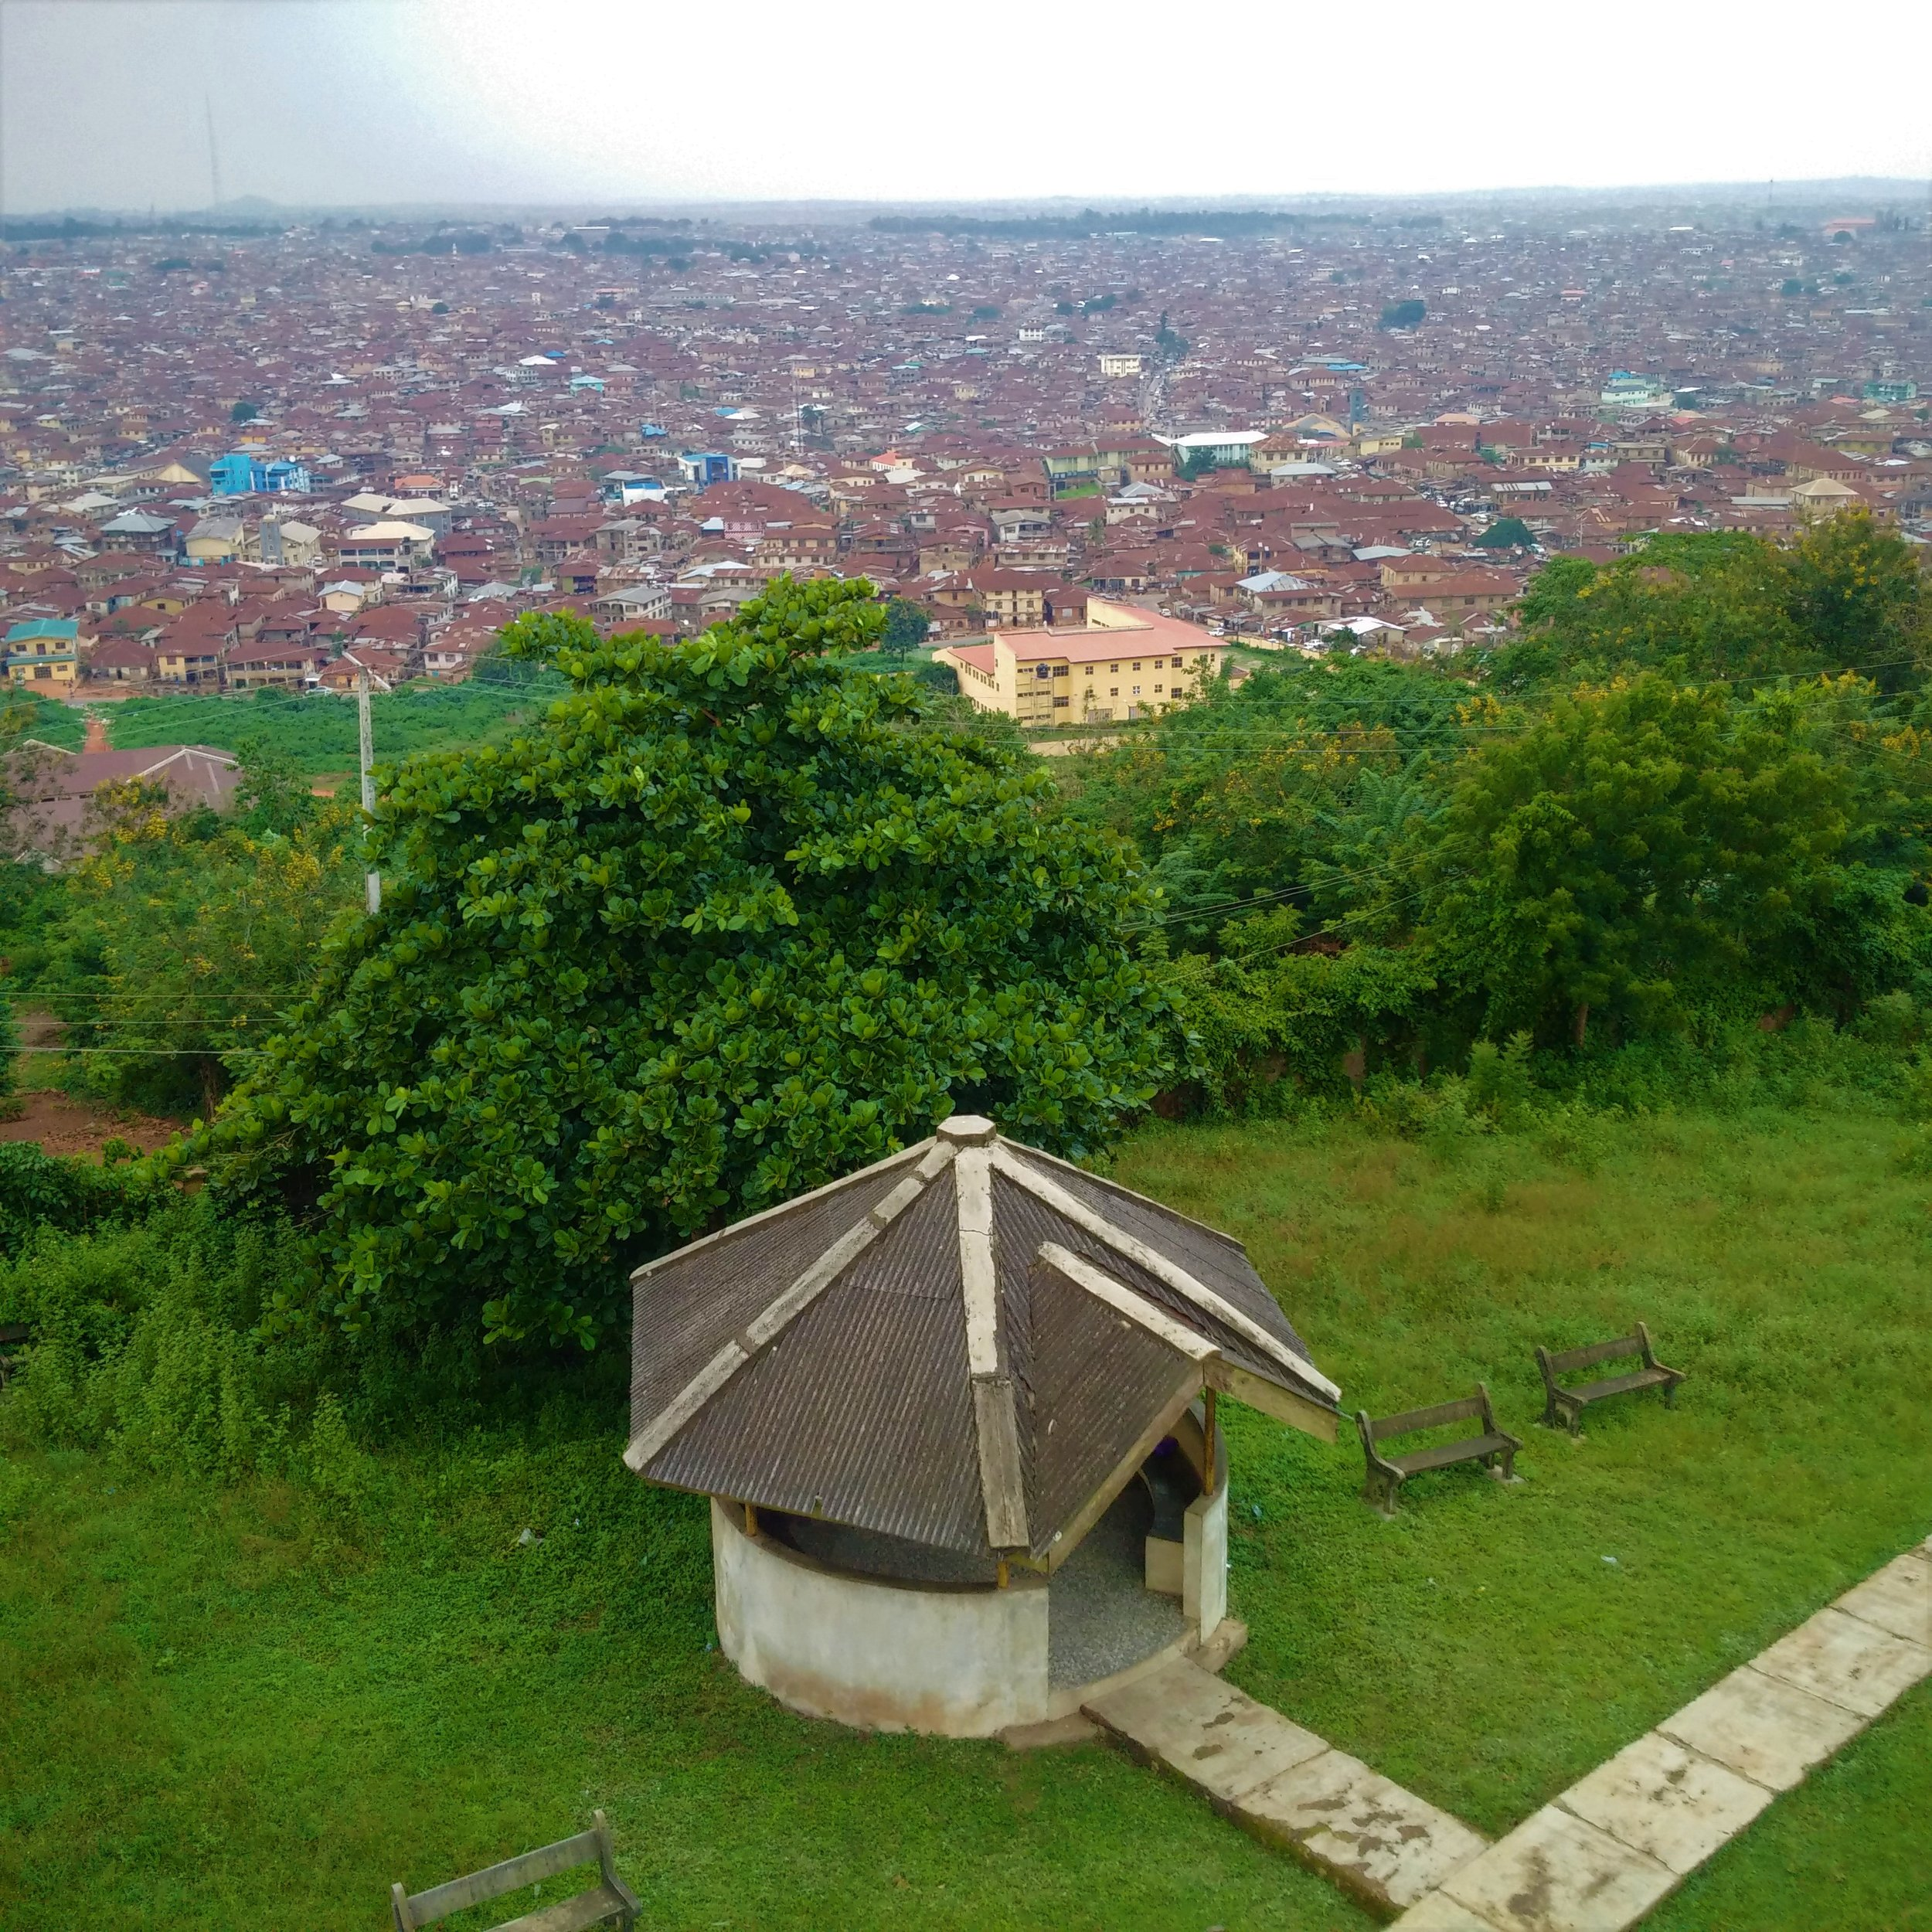 Places to visit in Ibadan